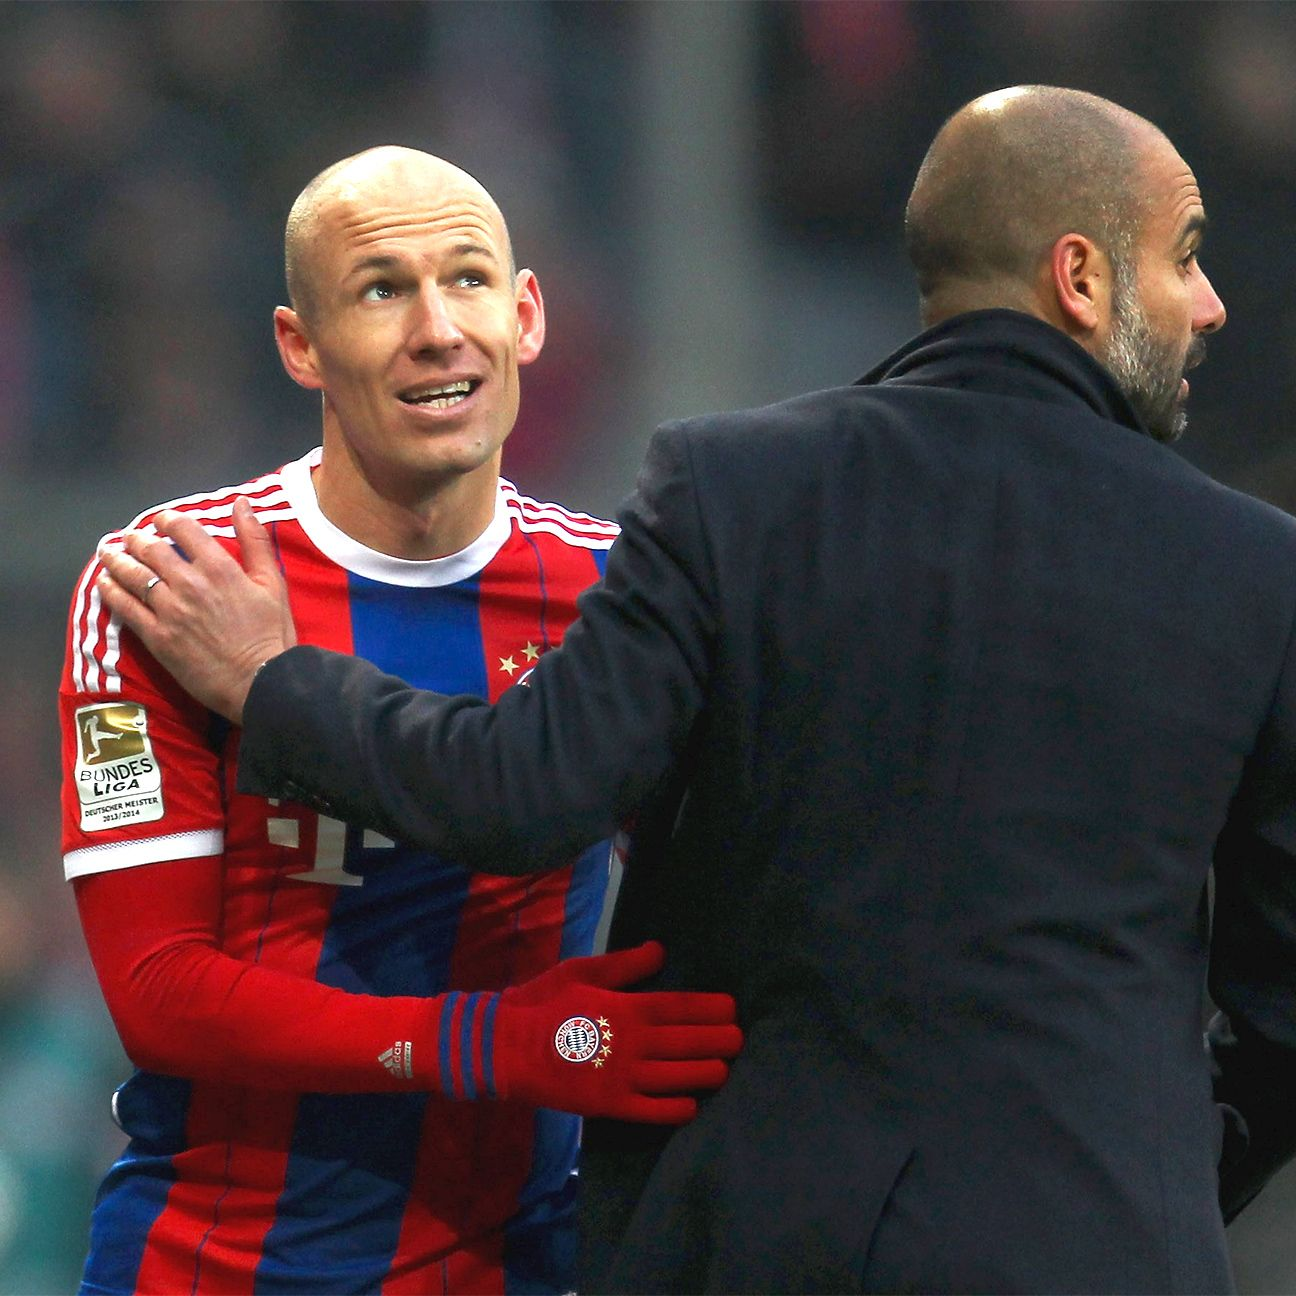 When fit, Arjen Robben is an integral part of Pep Guardiola's Bayern Munich.